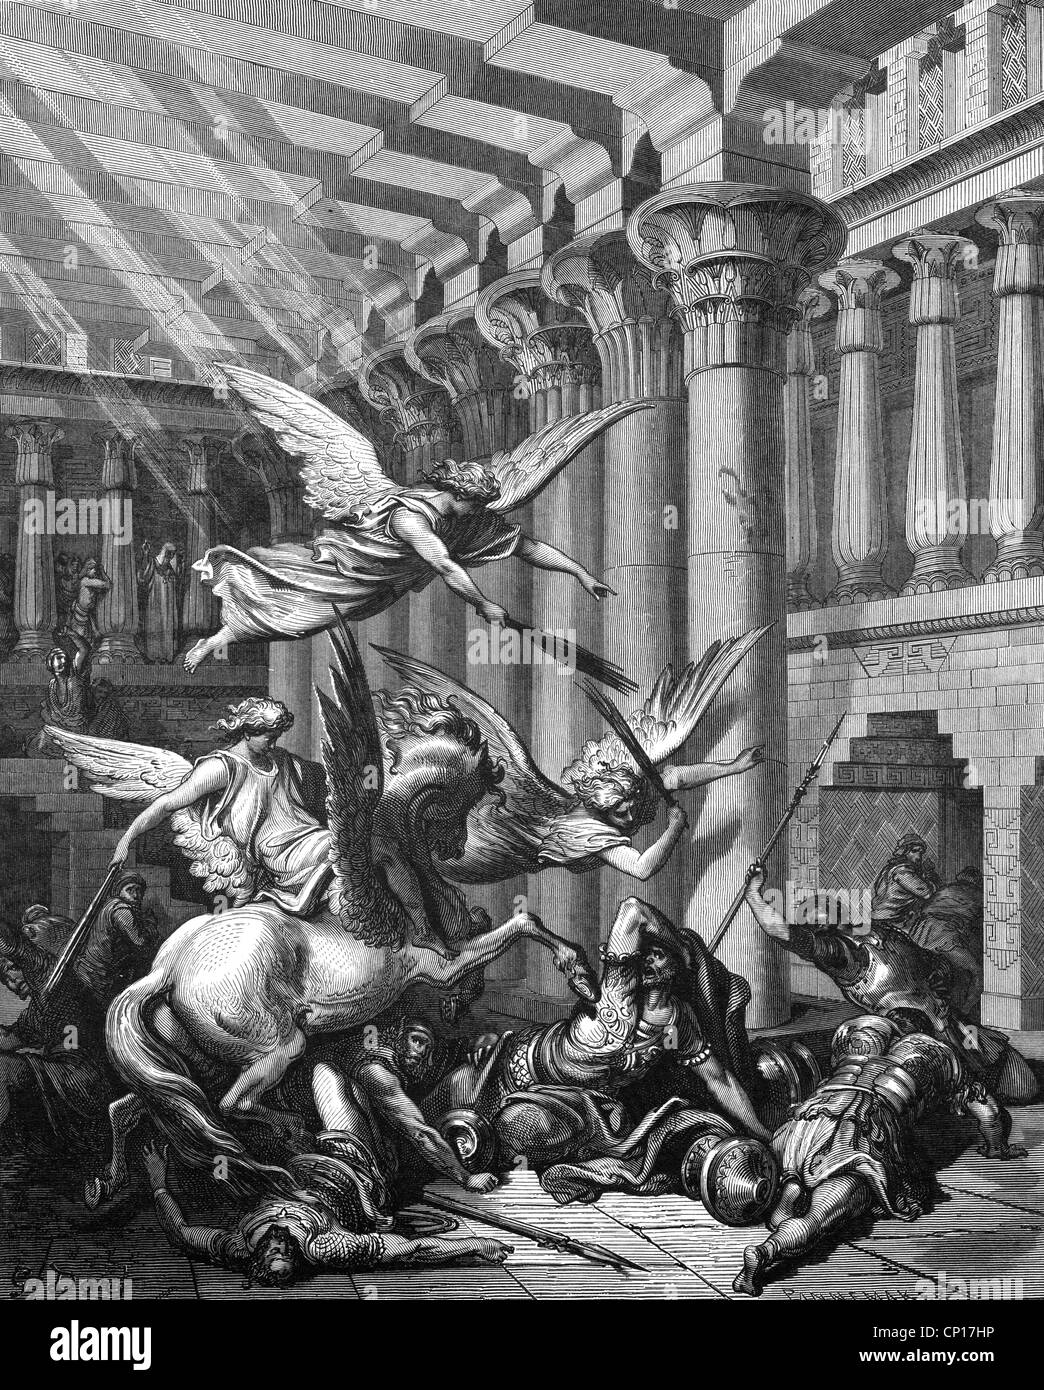 religion, biblical scenes, 'Expulsion of Heliodorus', wood engraving to the Bible by Gustave Doré, - Stock Image